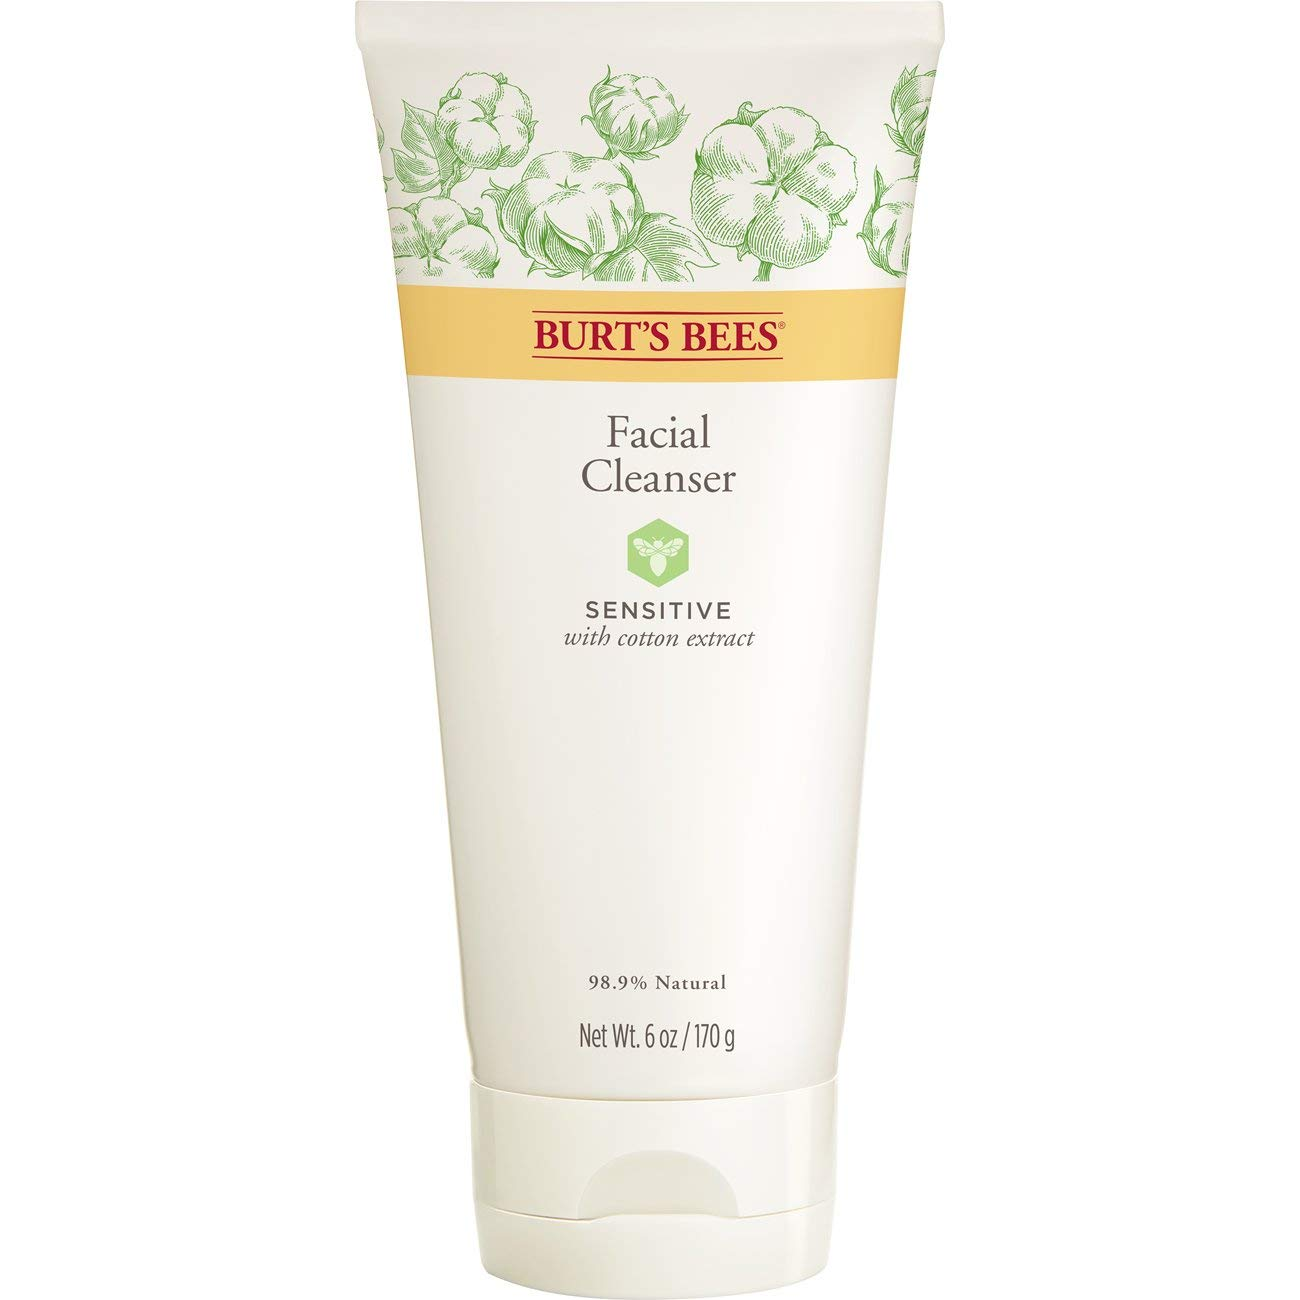 Burts Bees Face Cleanser for Sensitive Skin